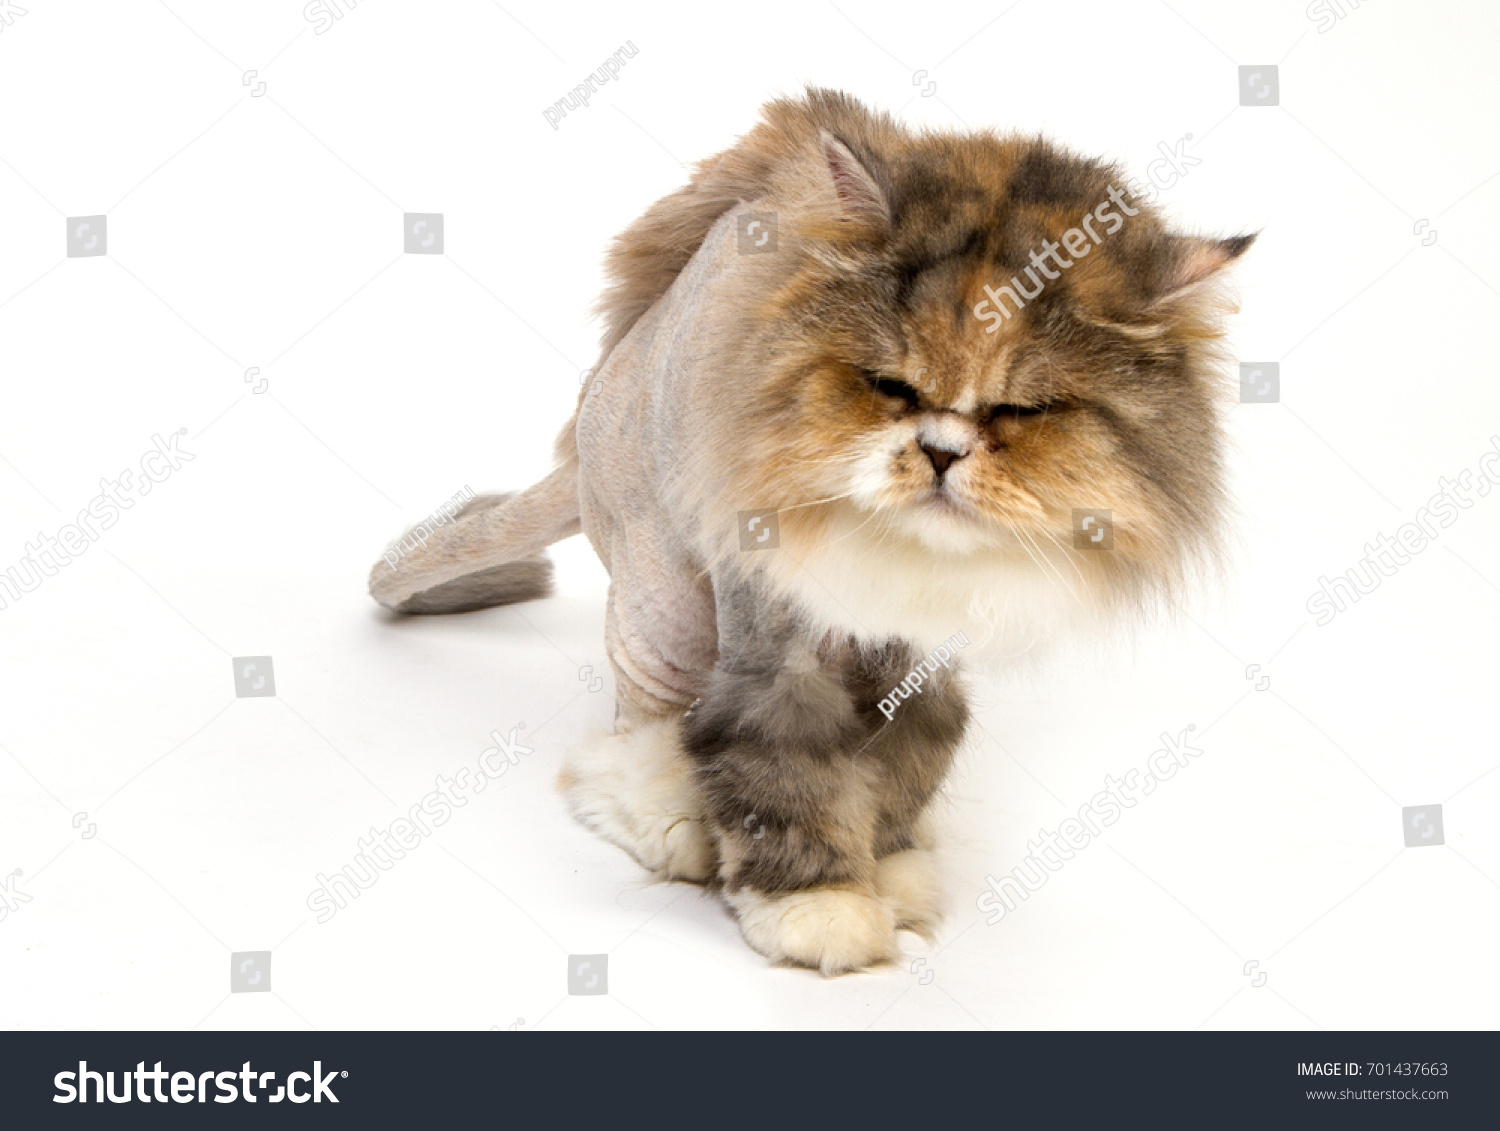 Cat Haircut Lion White Background Stock Photo Edit Now 701437663